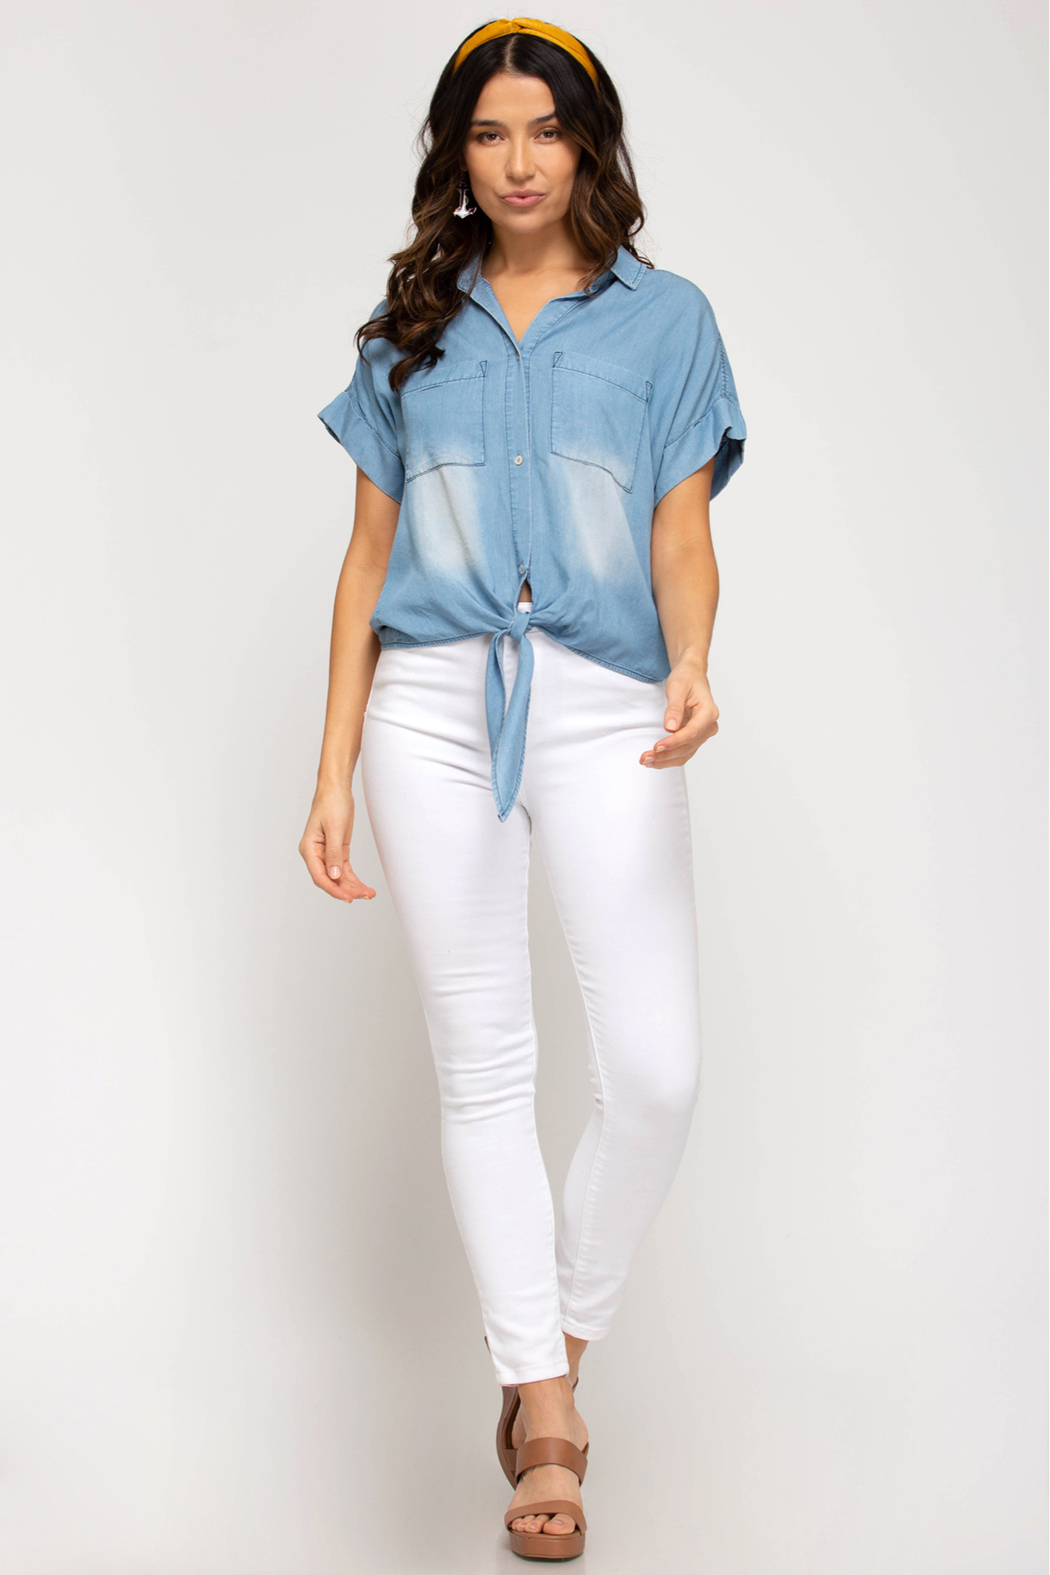 She and Sky SHORT SLV CHAMBRAY TOP W/ FRONT TIE - Main Image